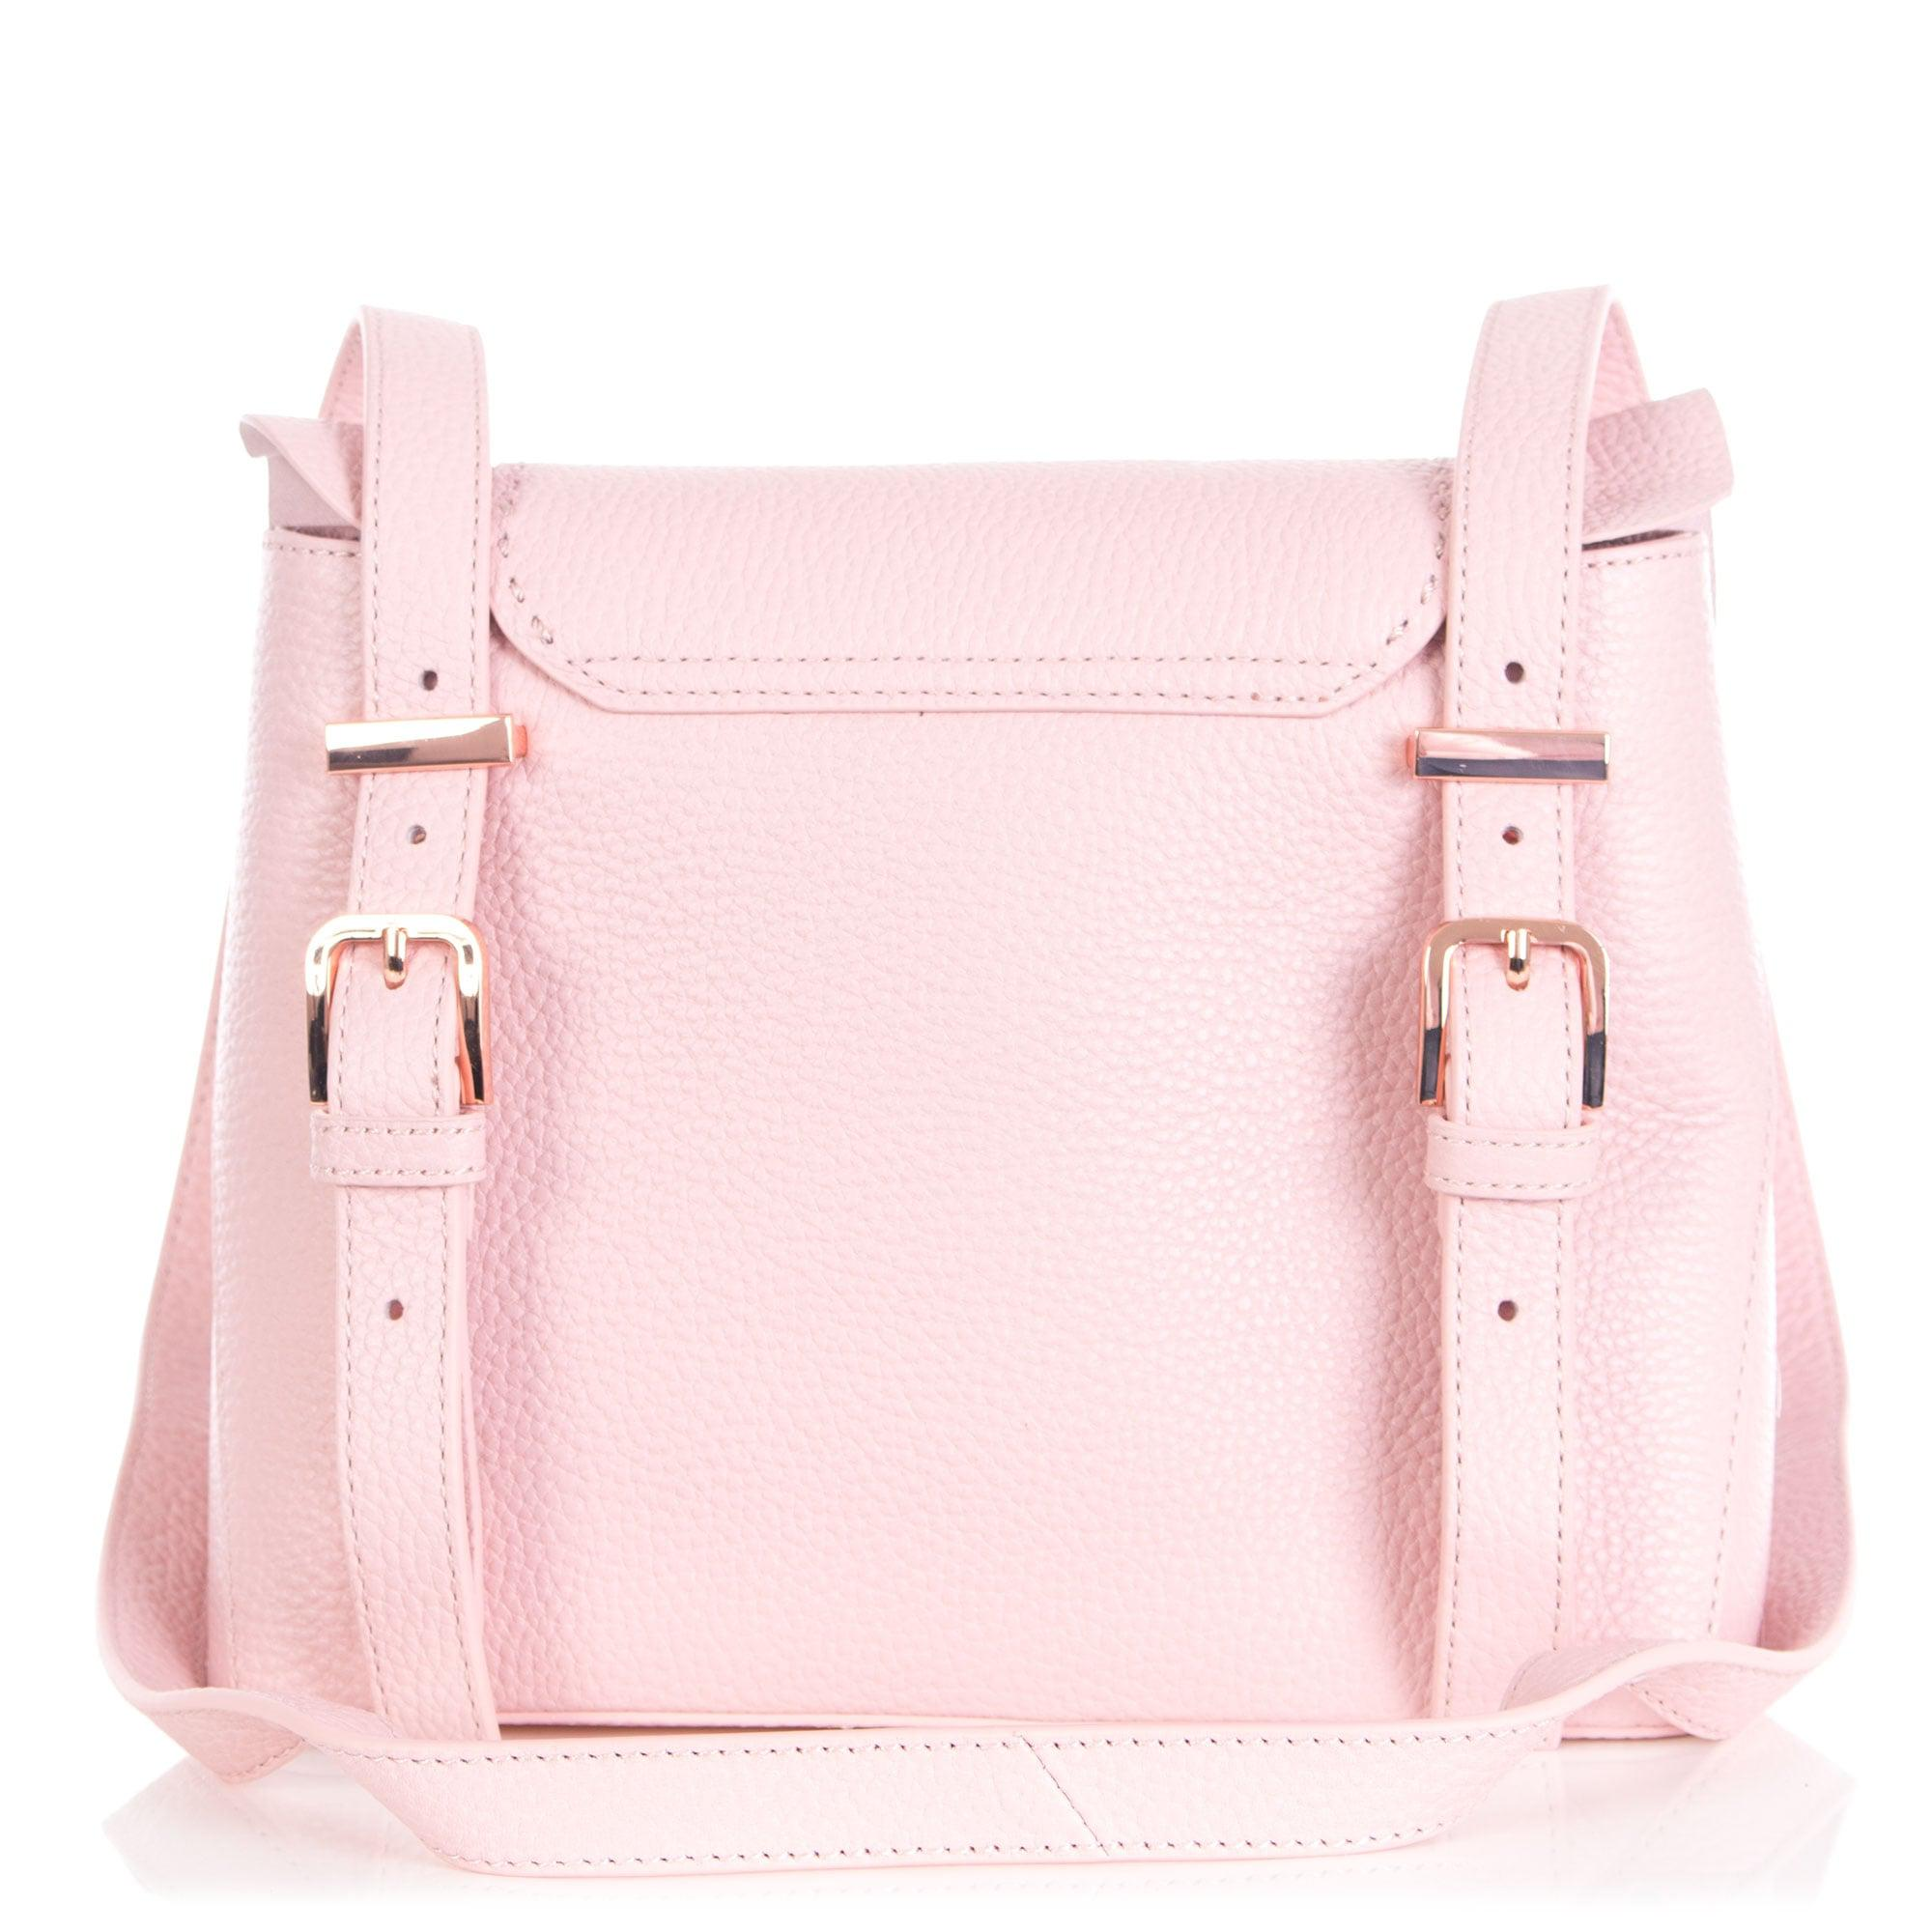 9892a7382 Ted Baker Rammira Leather Ruffle Multiway Backpack in Pink - Lyst